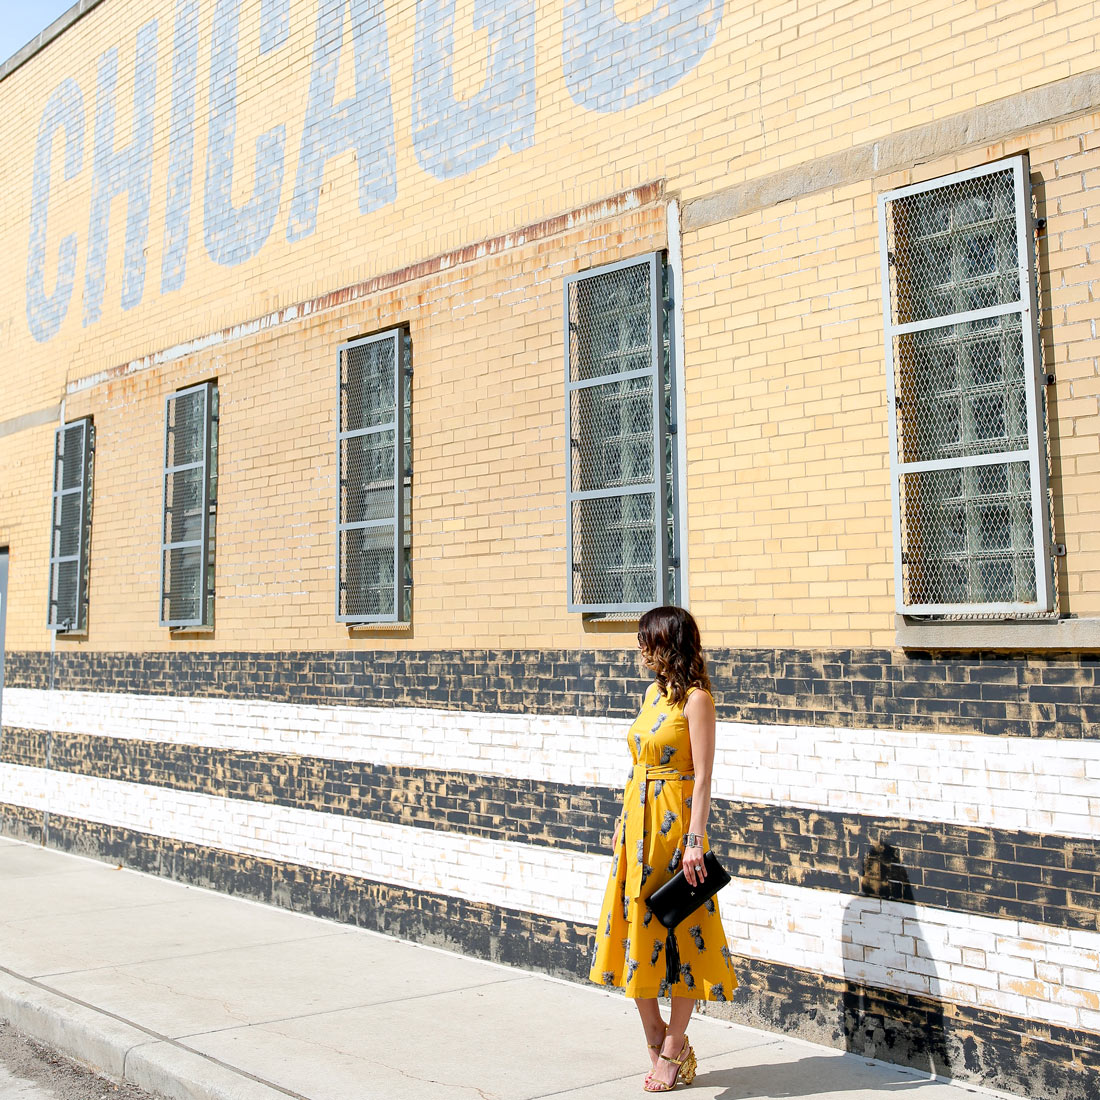 Goose Island Chicago Stripe Mural